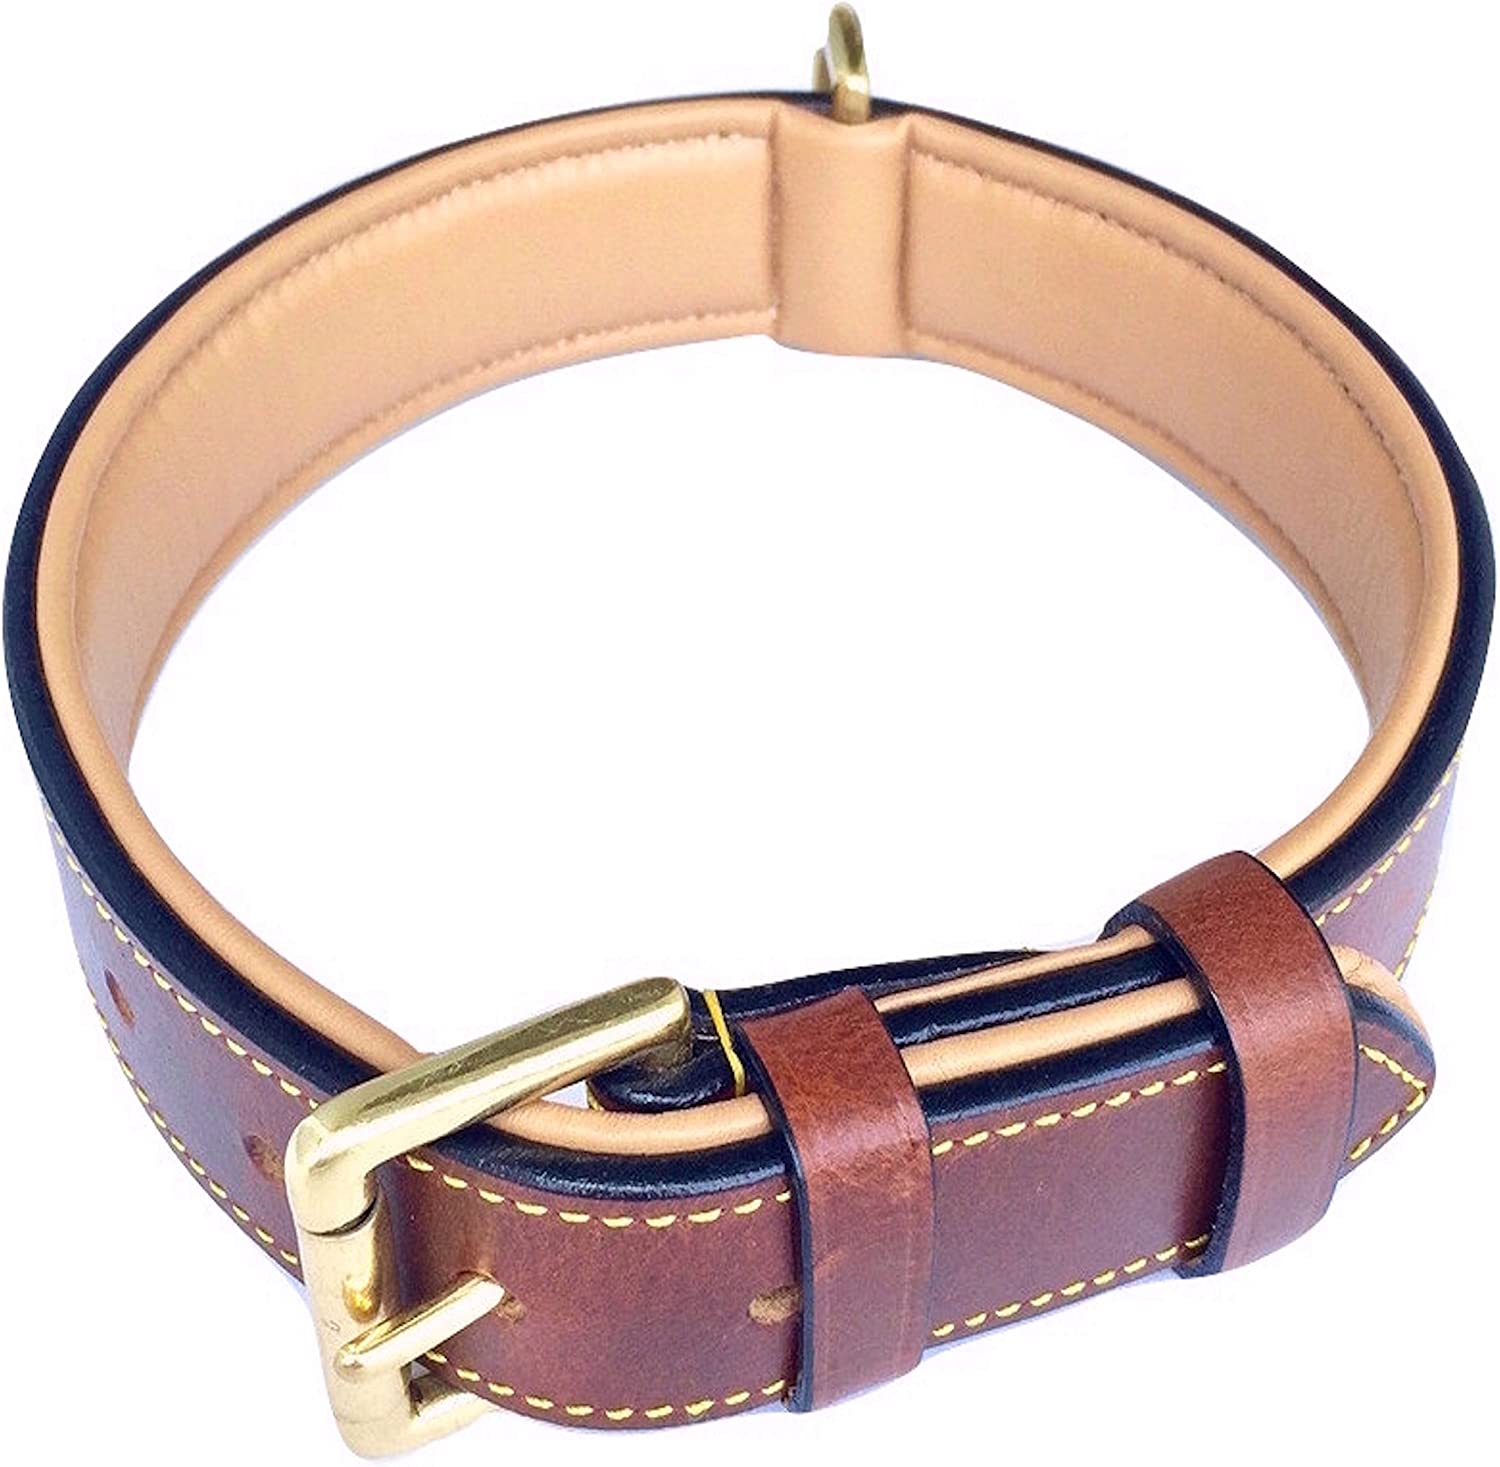 Soft Touch Collars, Luxury Padded Dog Collar Review